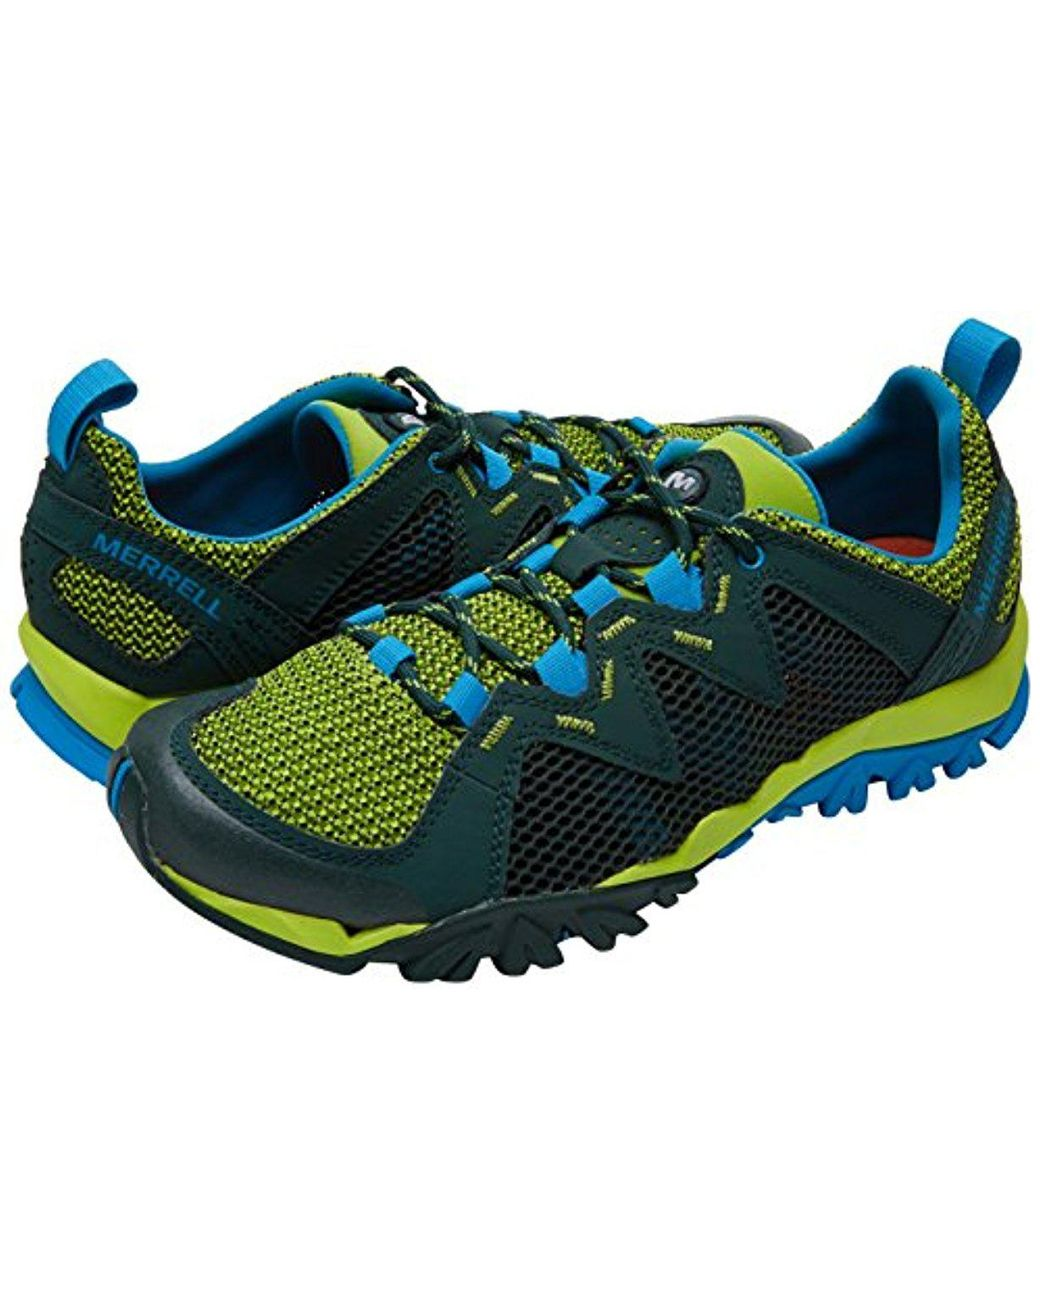 caf284c7e153 Lyst - Merrell   s Tetrex Rapid Crest Water Shoes in Green for Men